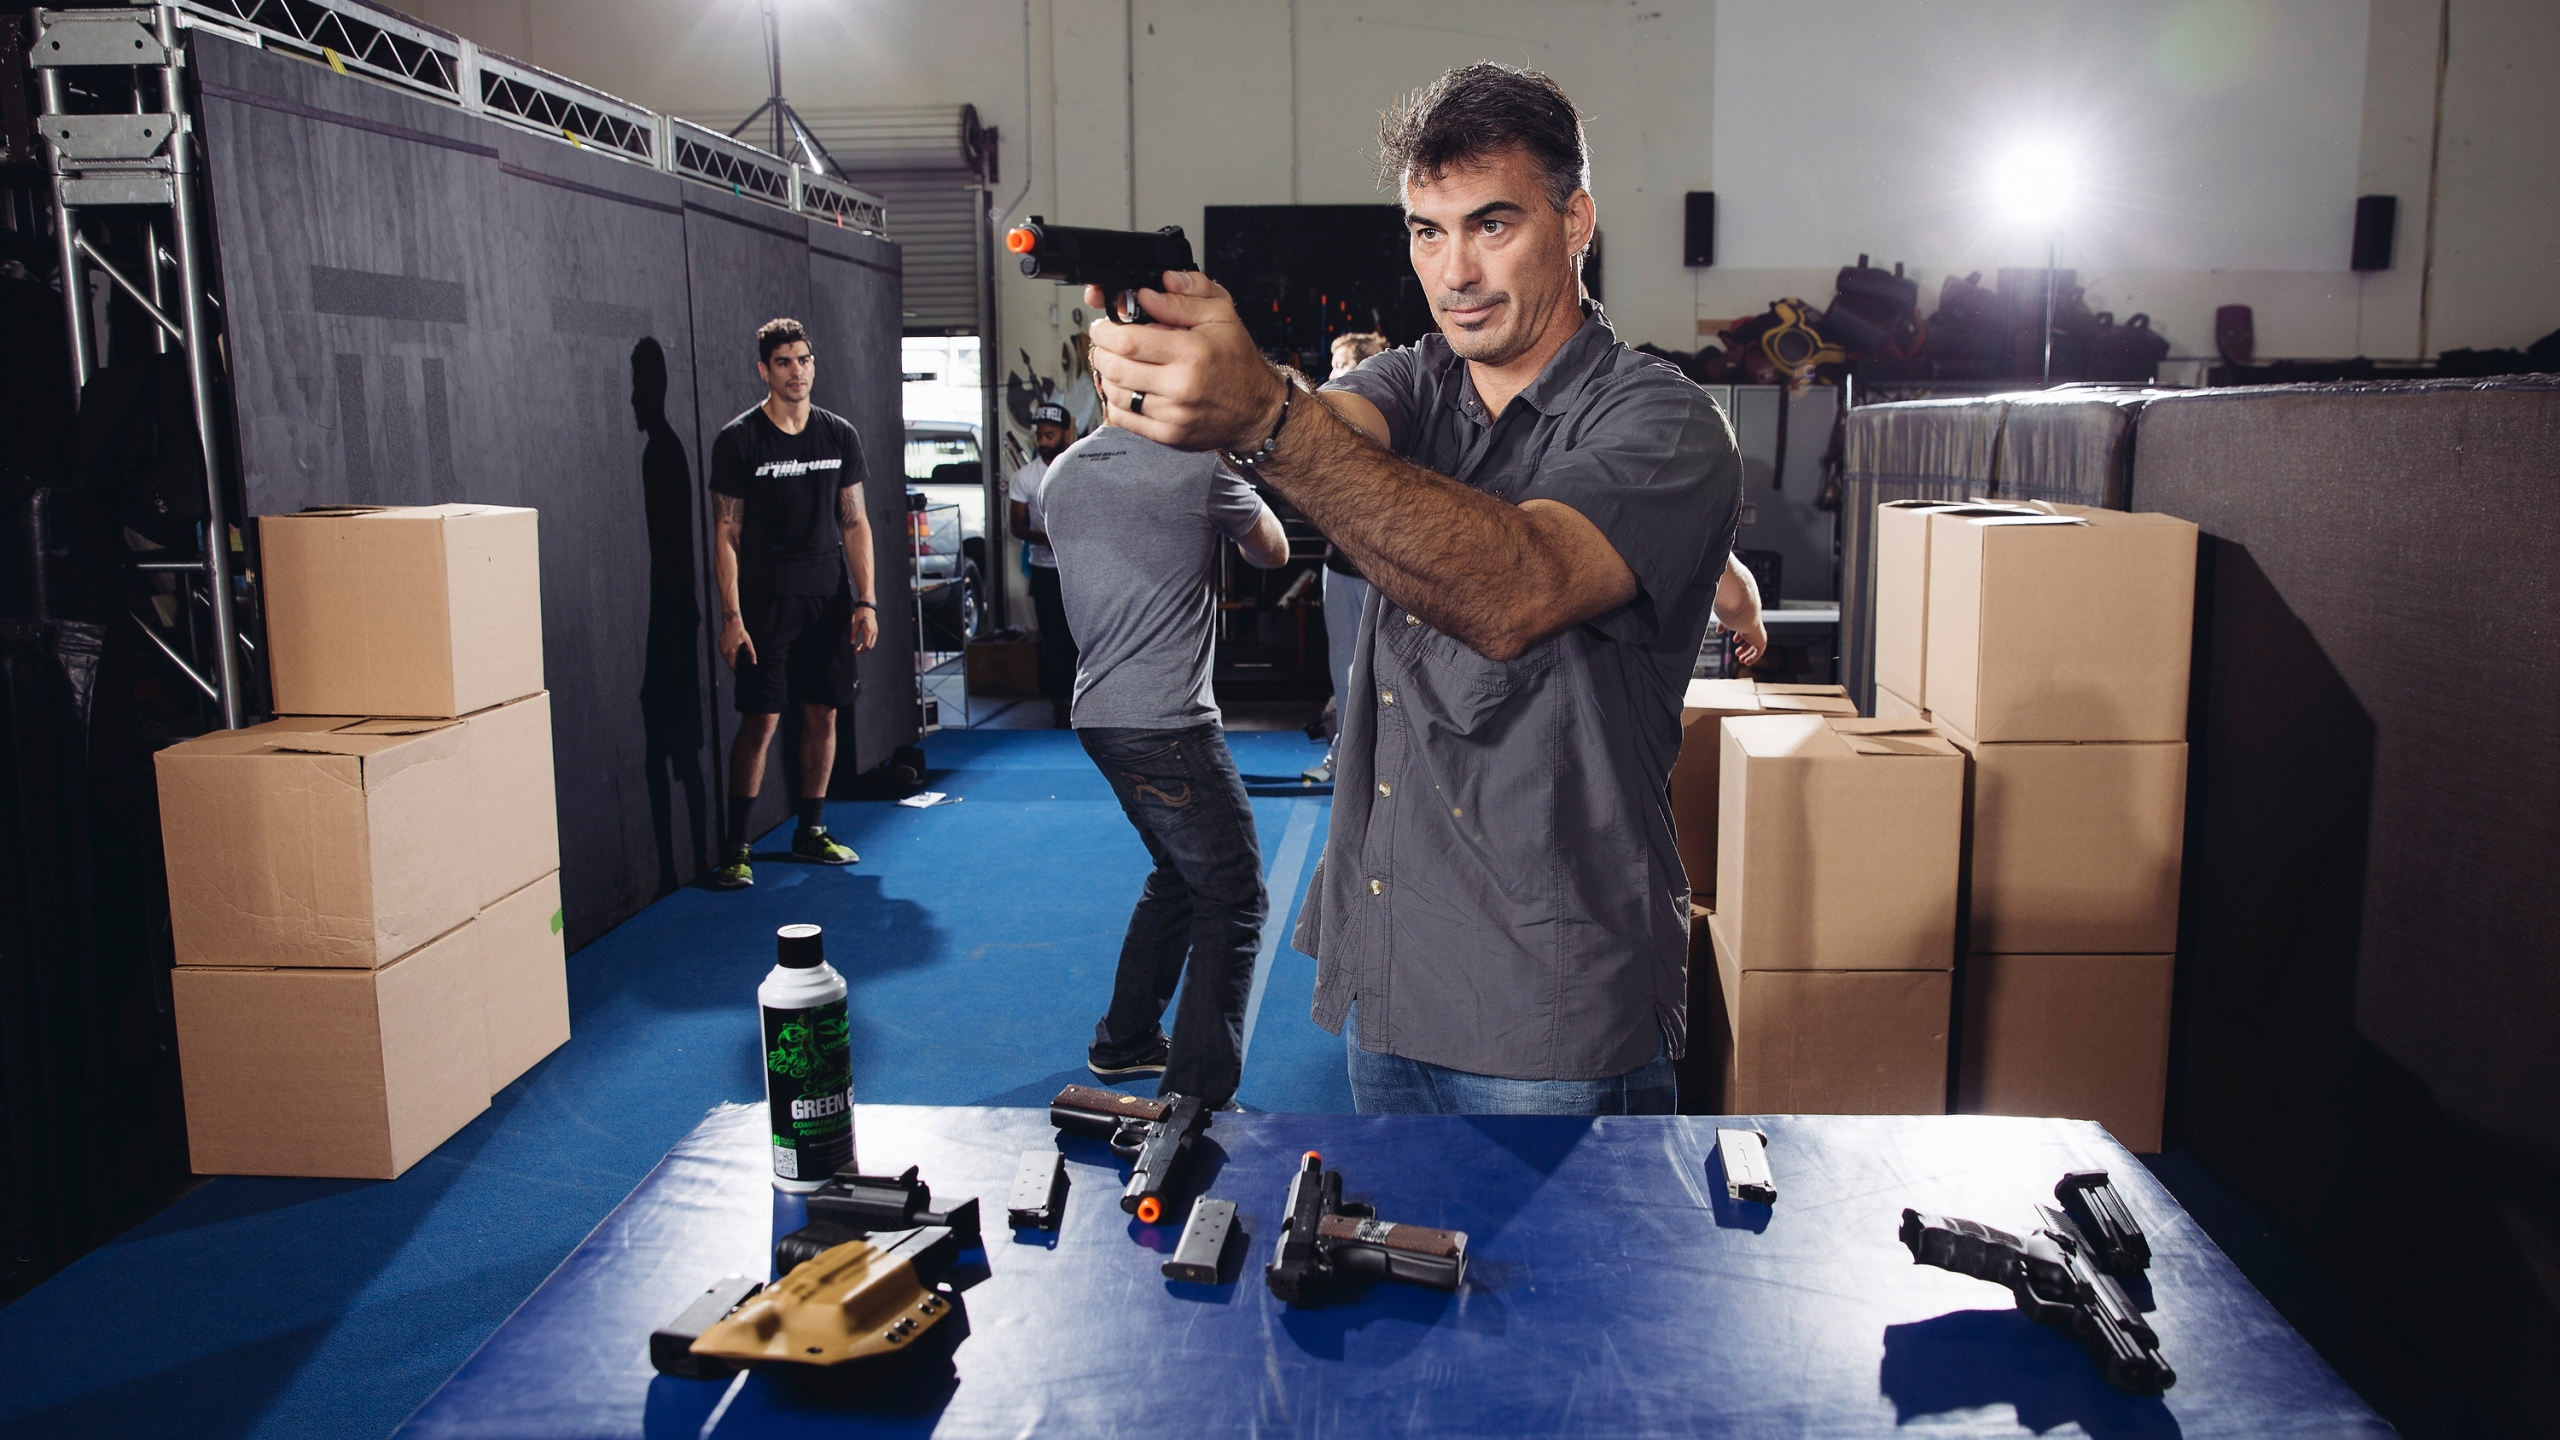 """In this Oct. 7, 2014 photo, Chad Stahelski, co-director of the film, """"John Wick,"""" demonstrates proper gun handling during a training session at 87Eleven Action Design in Inglewood, Calif. (Photo by Casey Curry/Invision/AP, File)"""